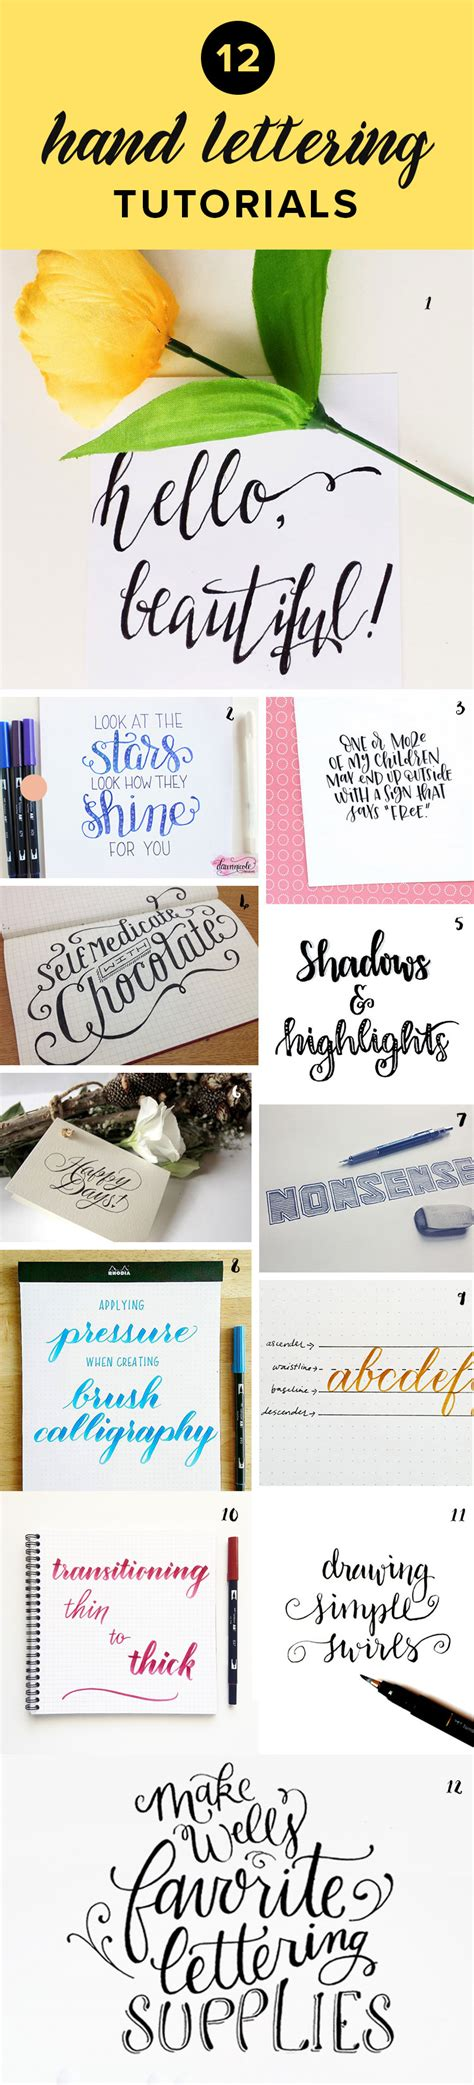 free tutorial hand lettering 24 awesome hand lettering tutorials